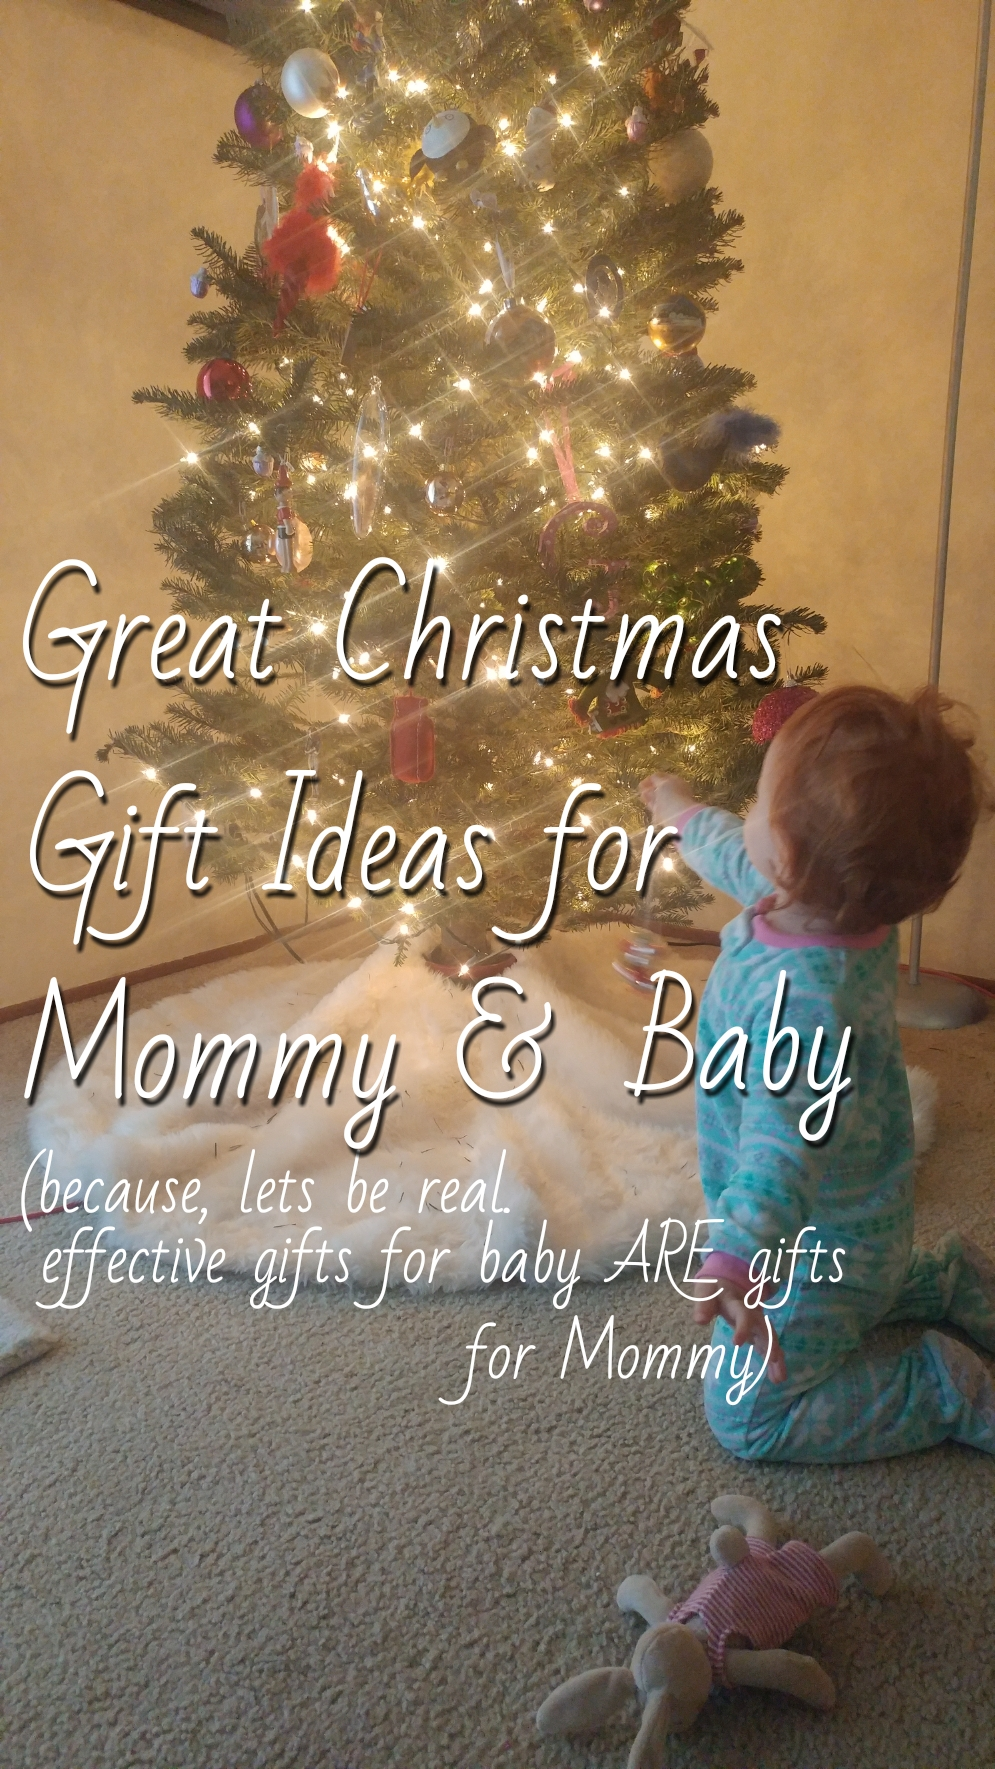 Great Christmas Gift Ideas for Mommy and Baby — Juliana Jason